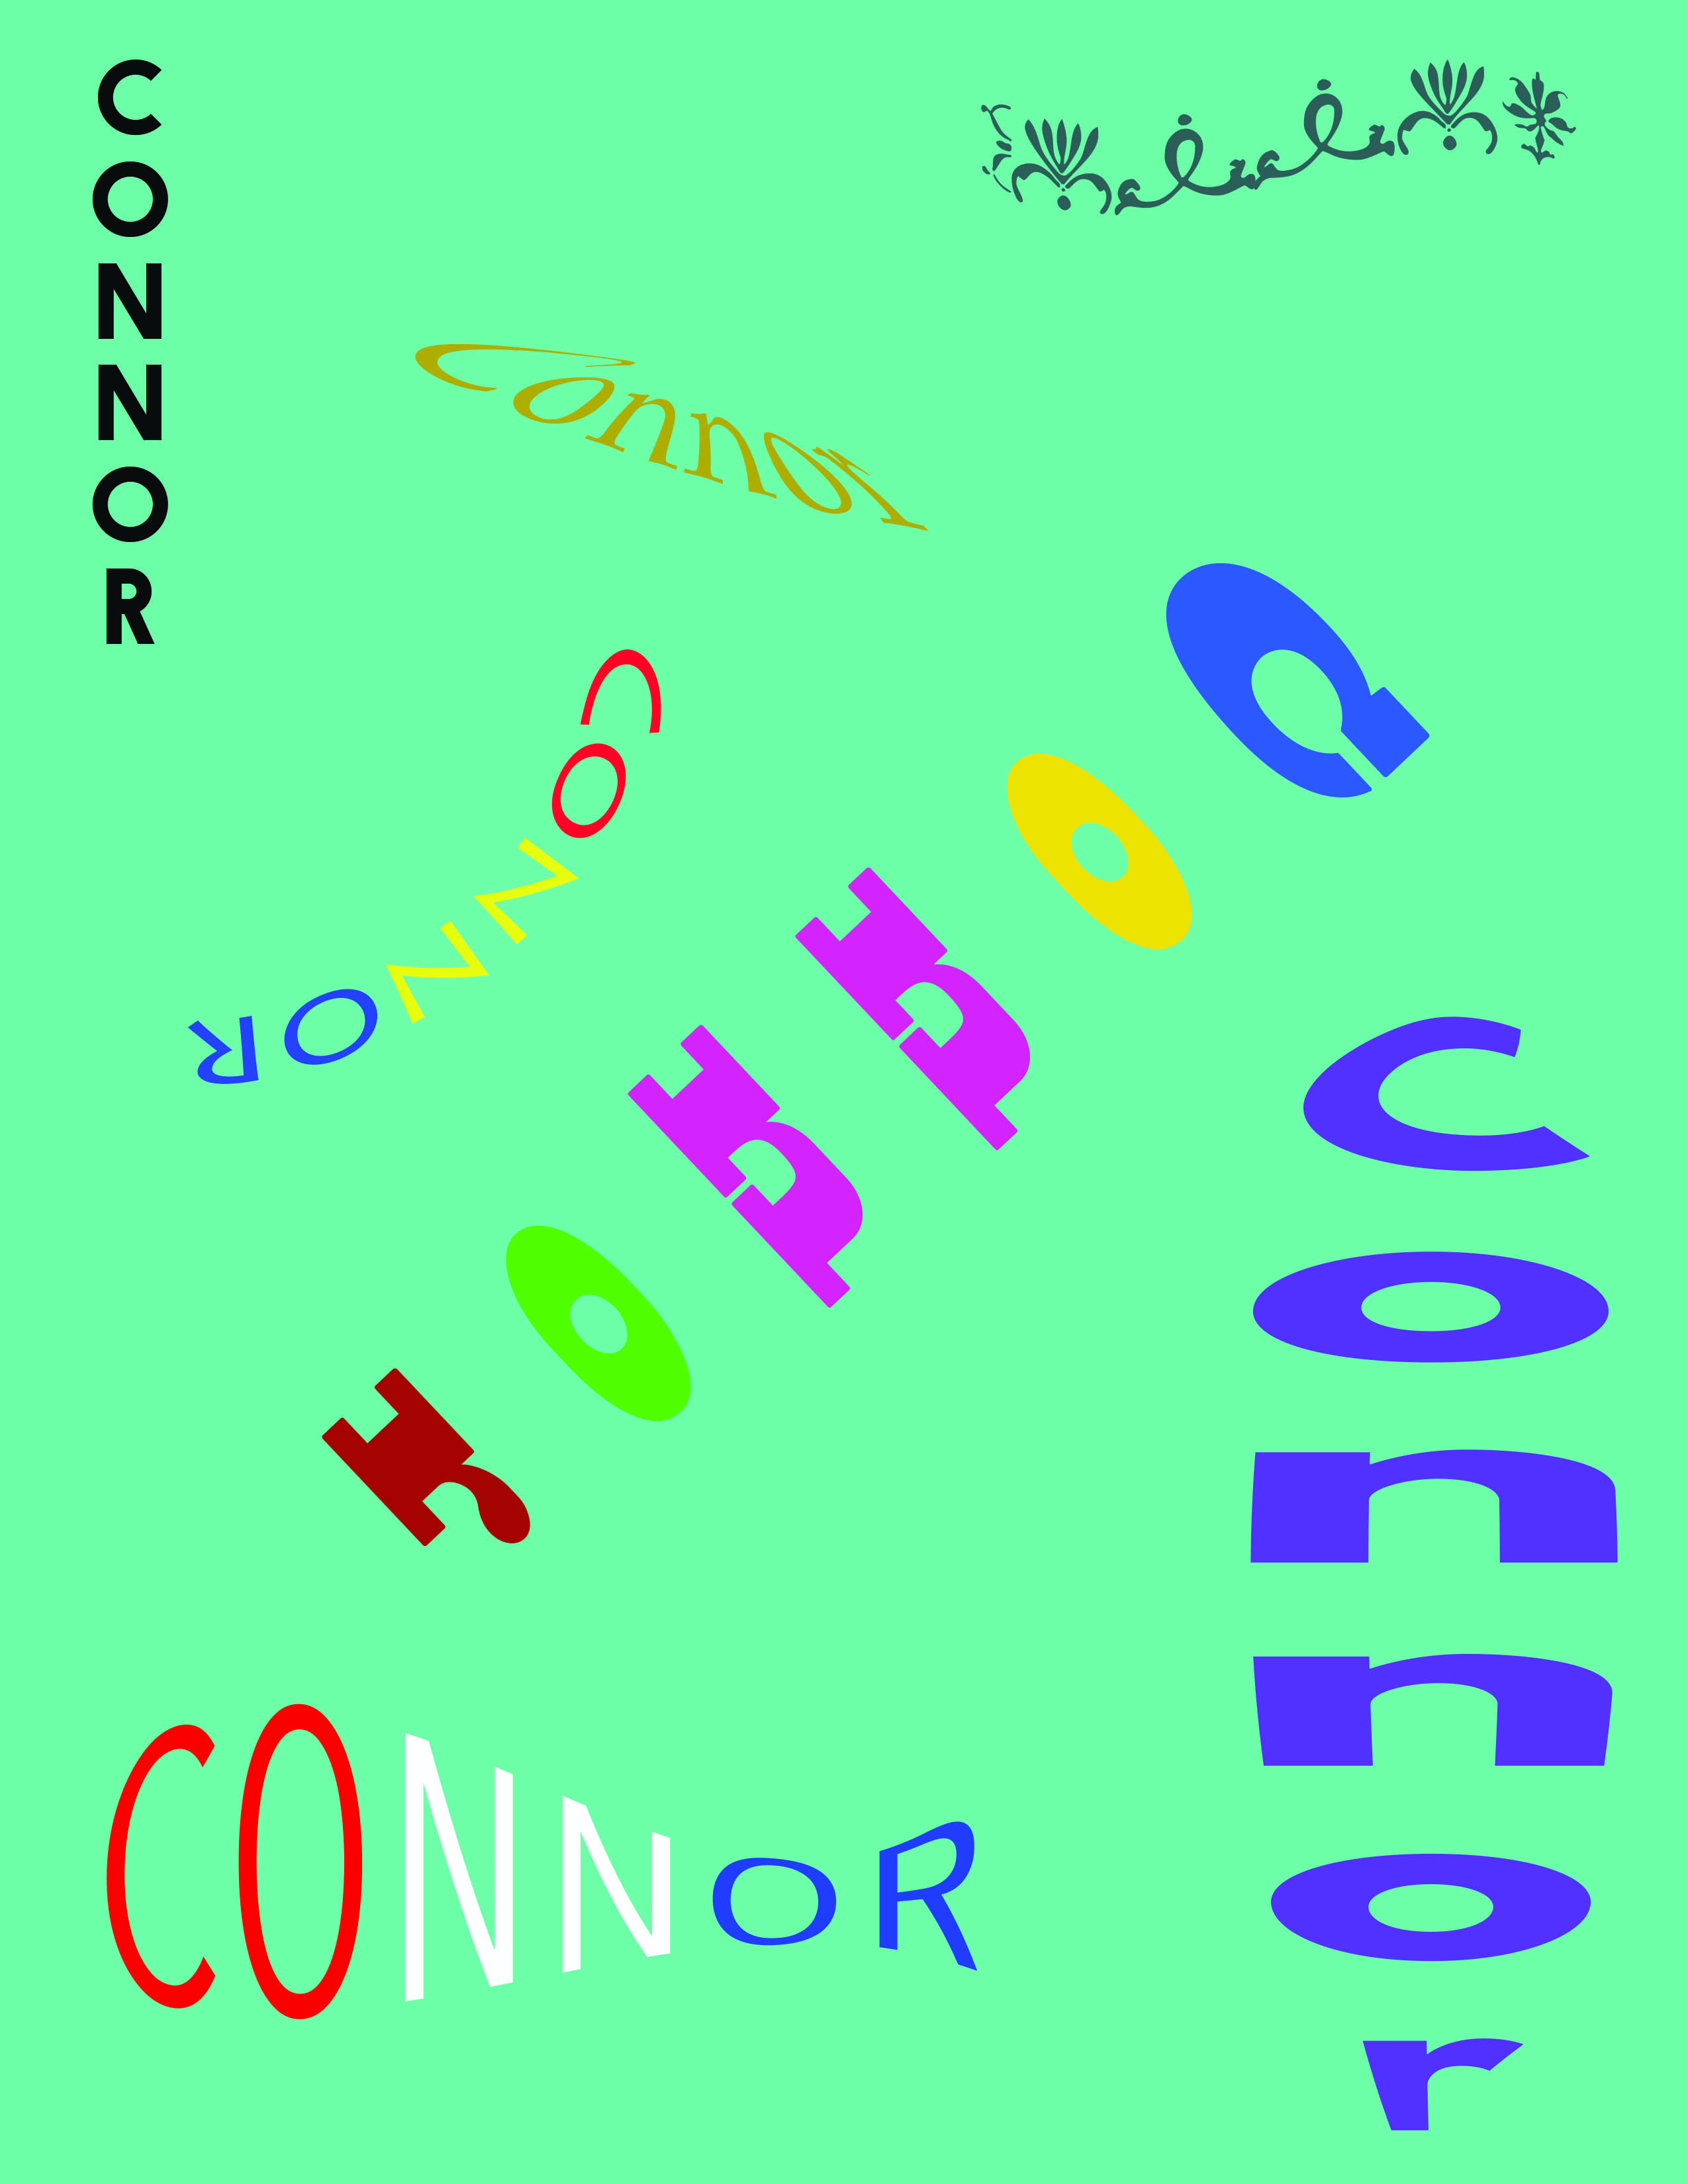 connor_name